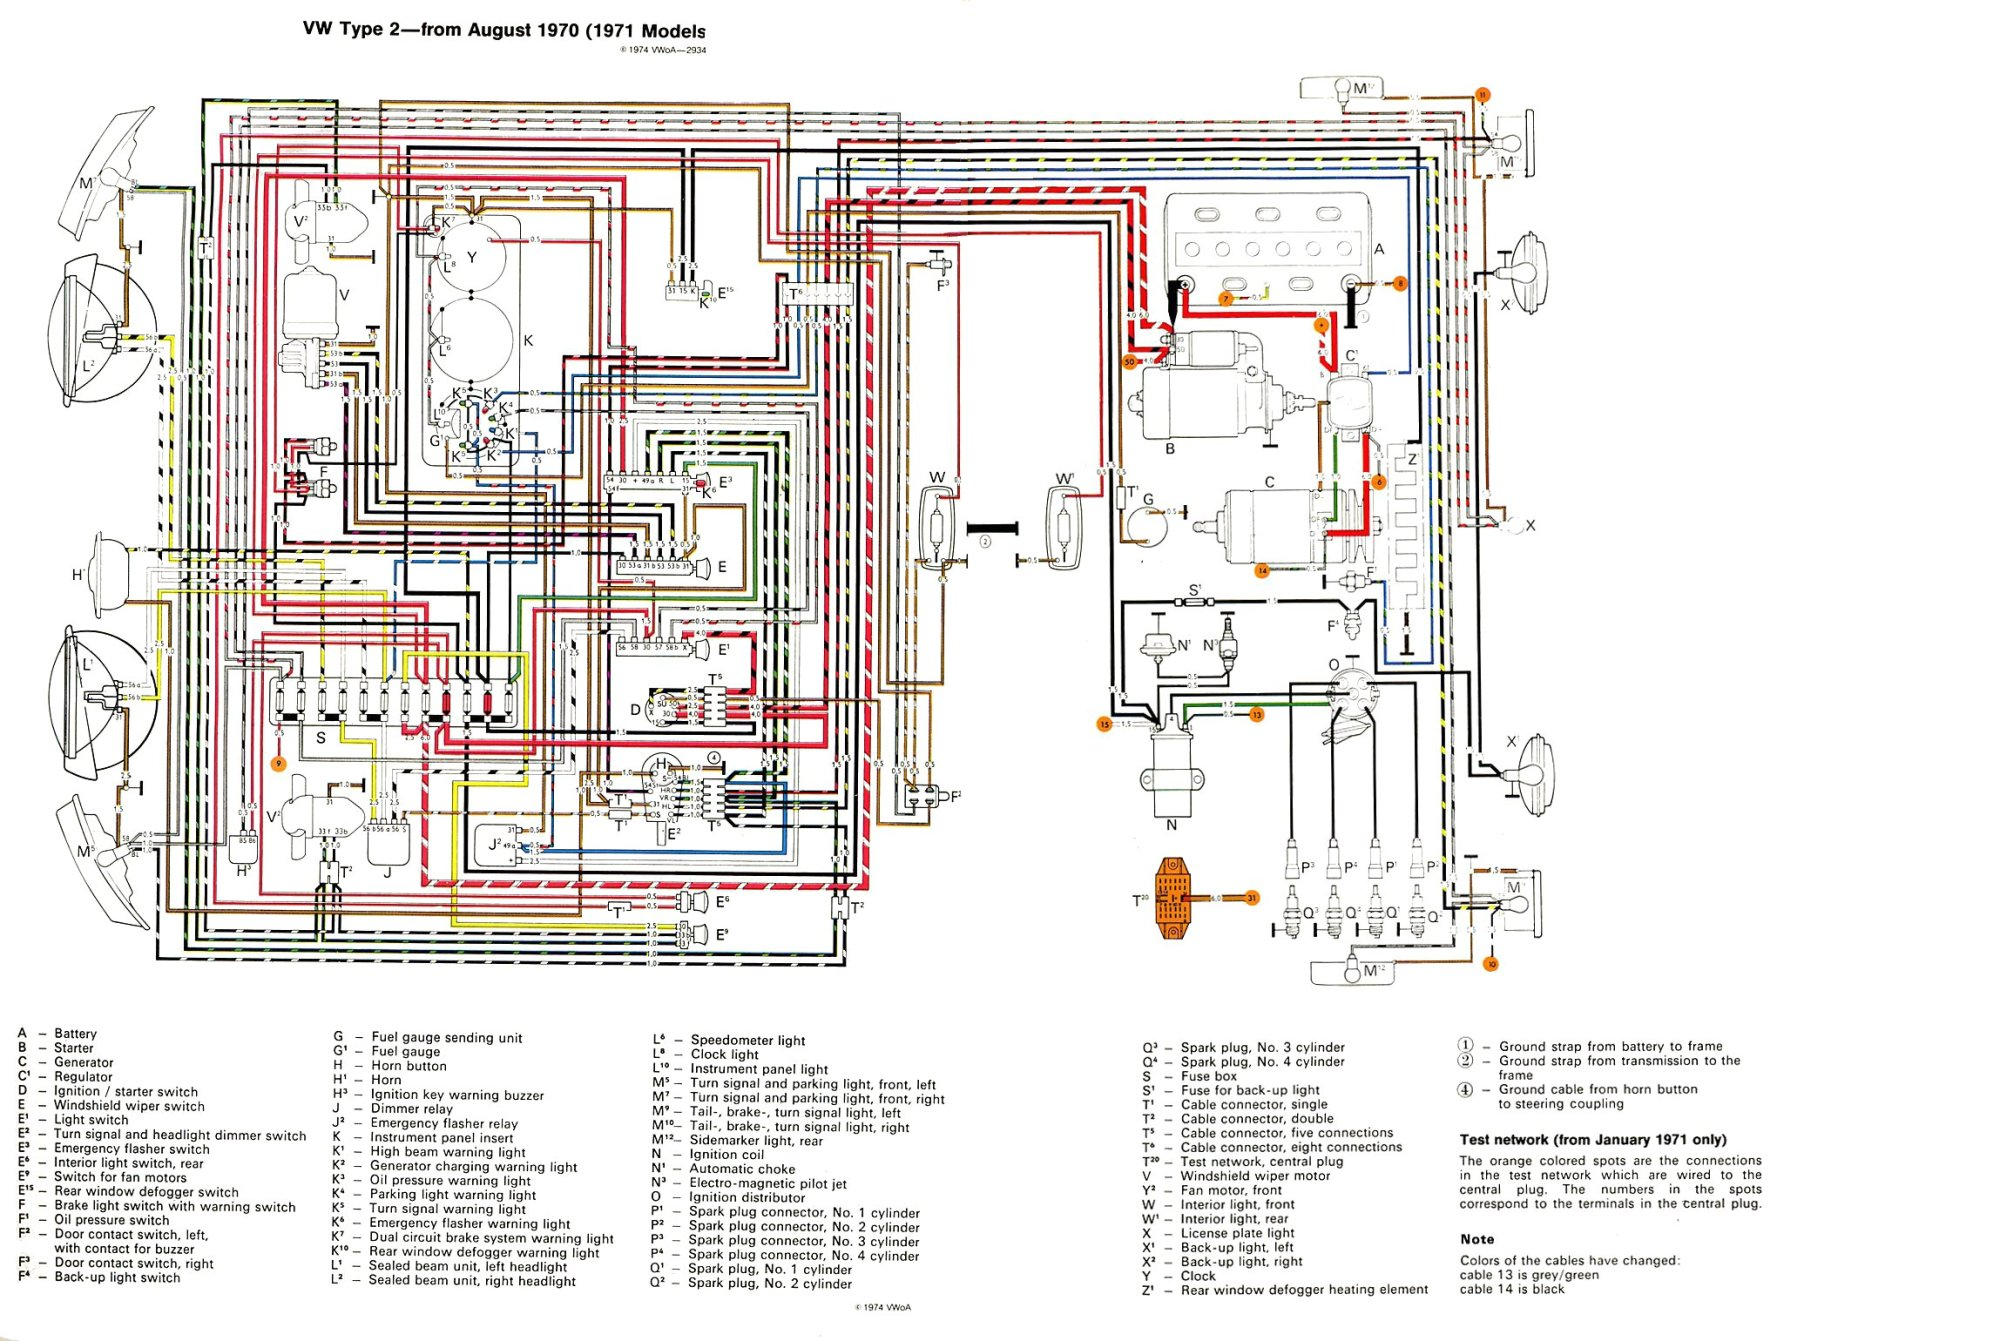 hight resolution of thesamba com type 2 wiring diagrams universal turn signal wiring diagram vanagon wiring diagram blinker